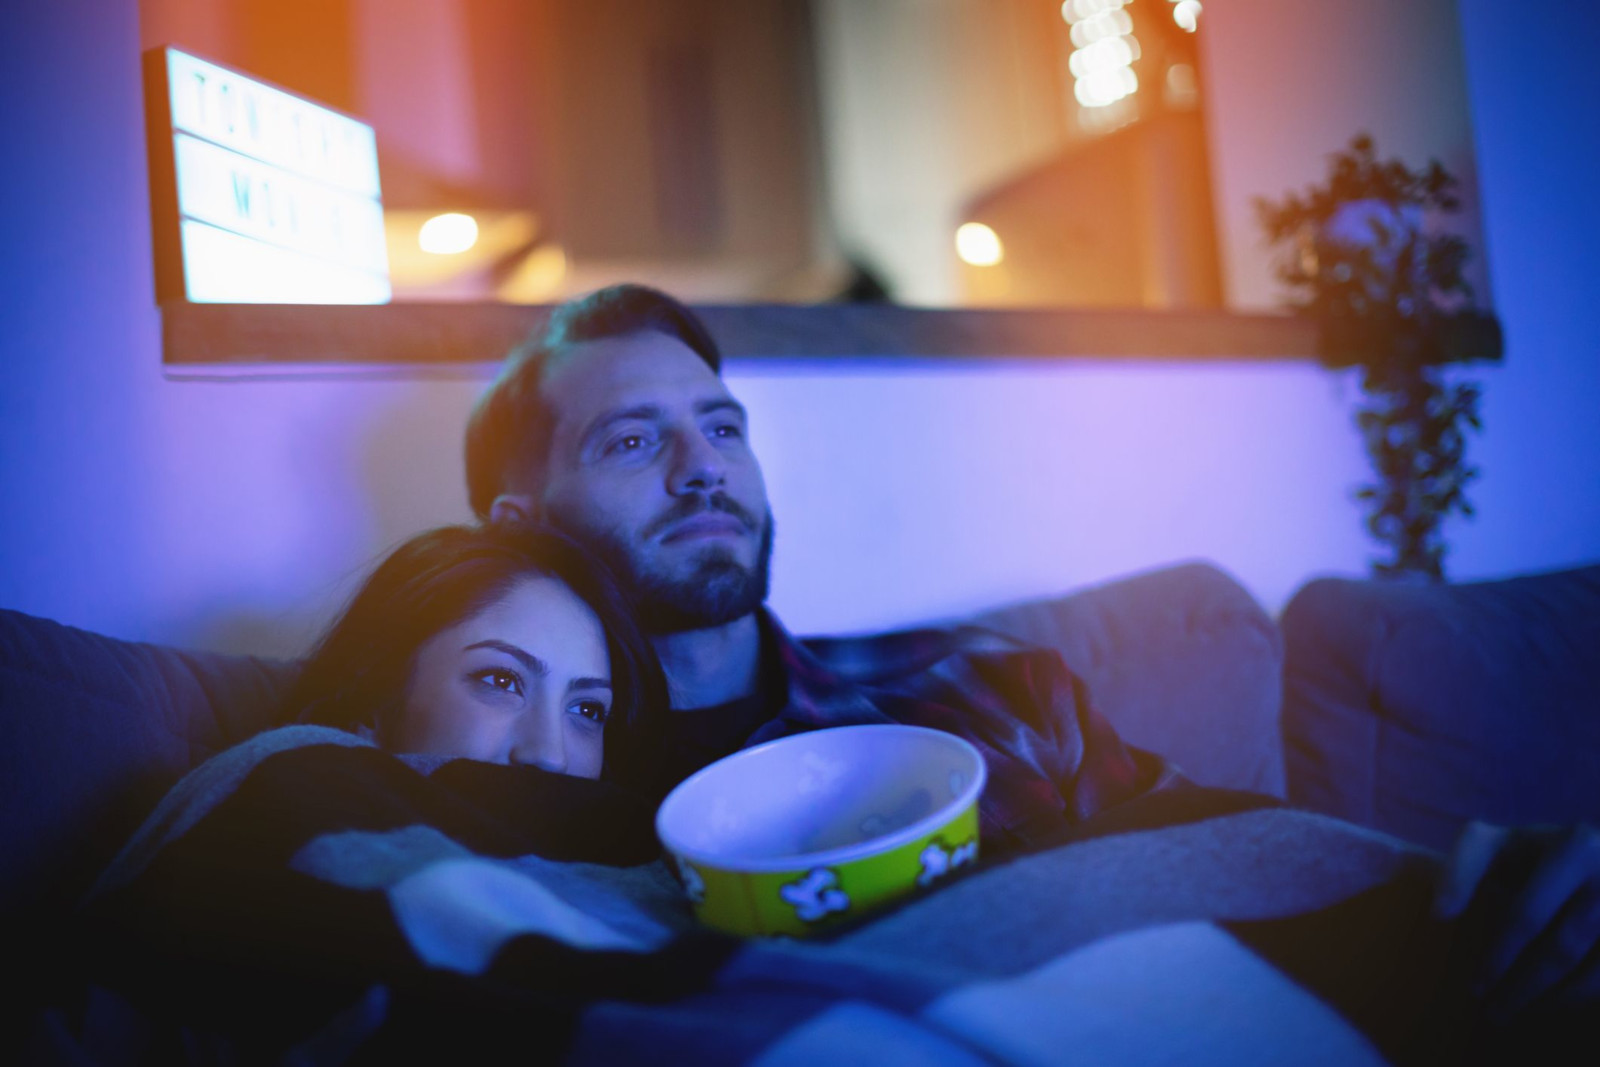 Is tonight date night? Plan a spectacular, unforgettable movie night with someone special! Check out these tips to make the evening perfect with ease!